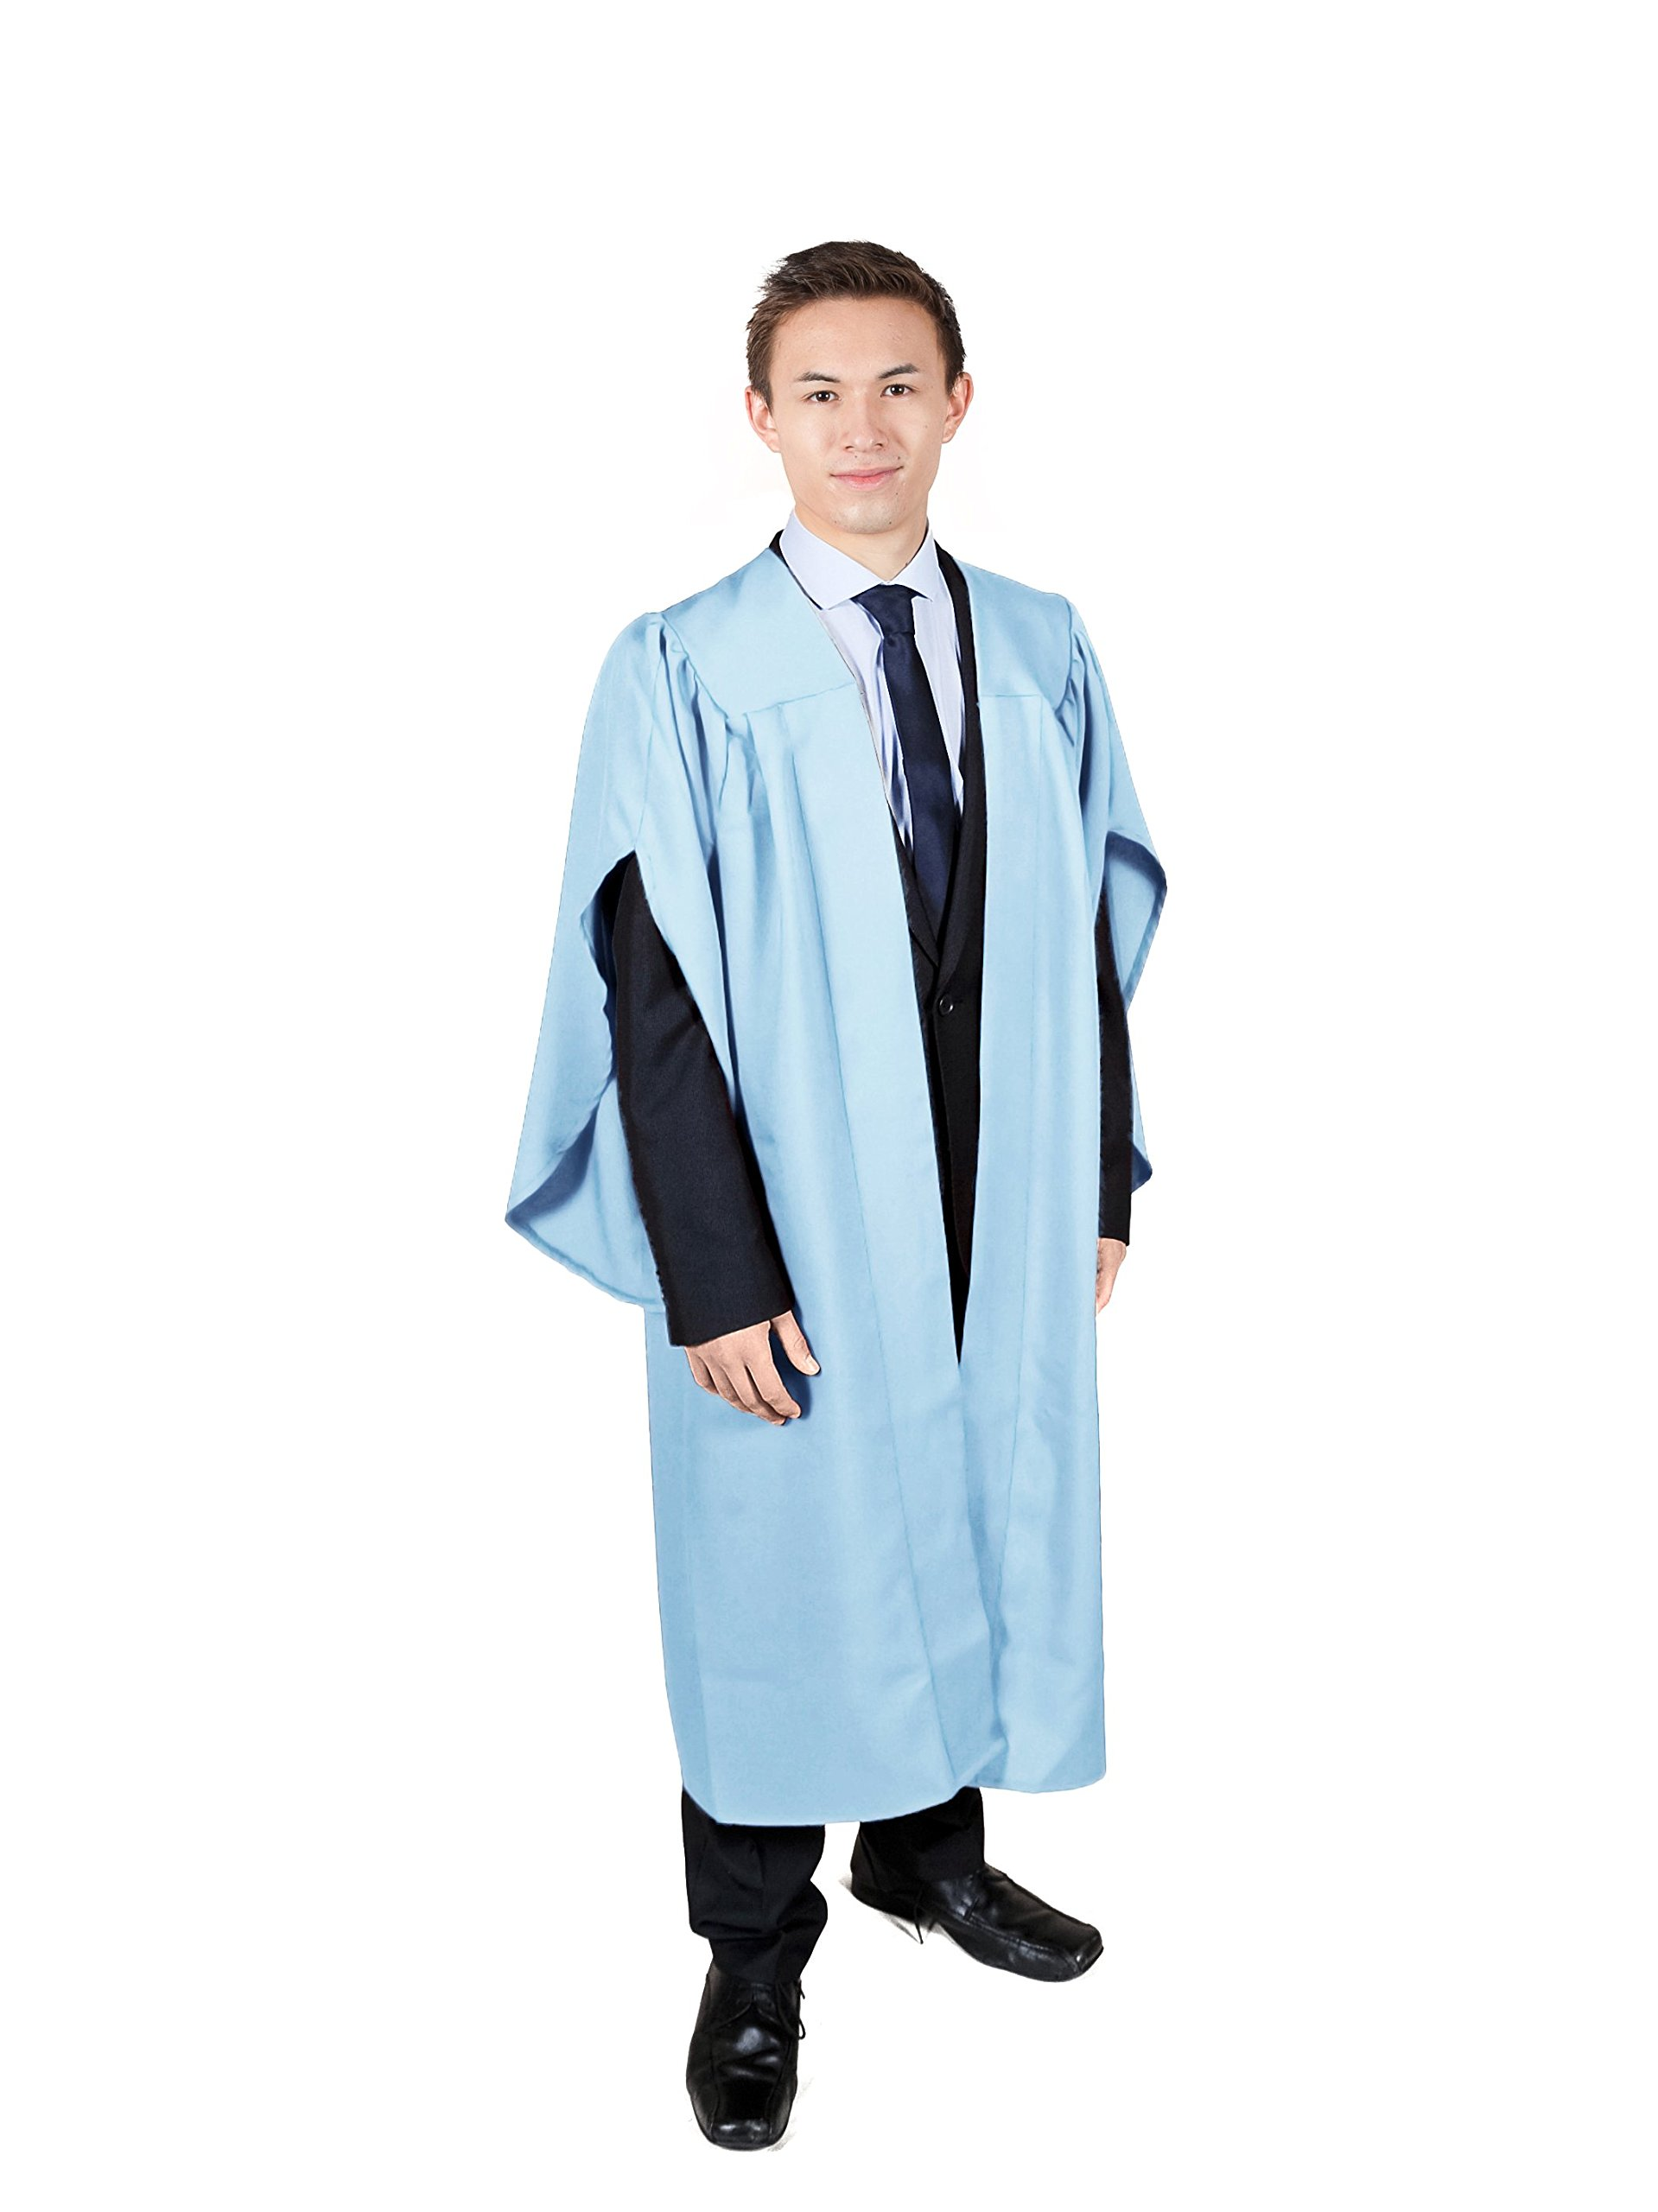 Graduation Attire Sky Blue Open Front Choir Robe (Height 5'3-5'5)